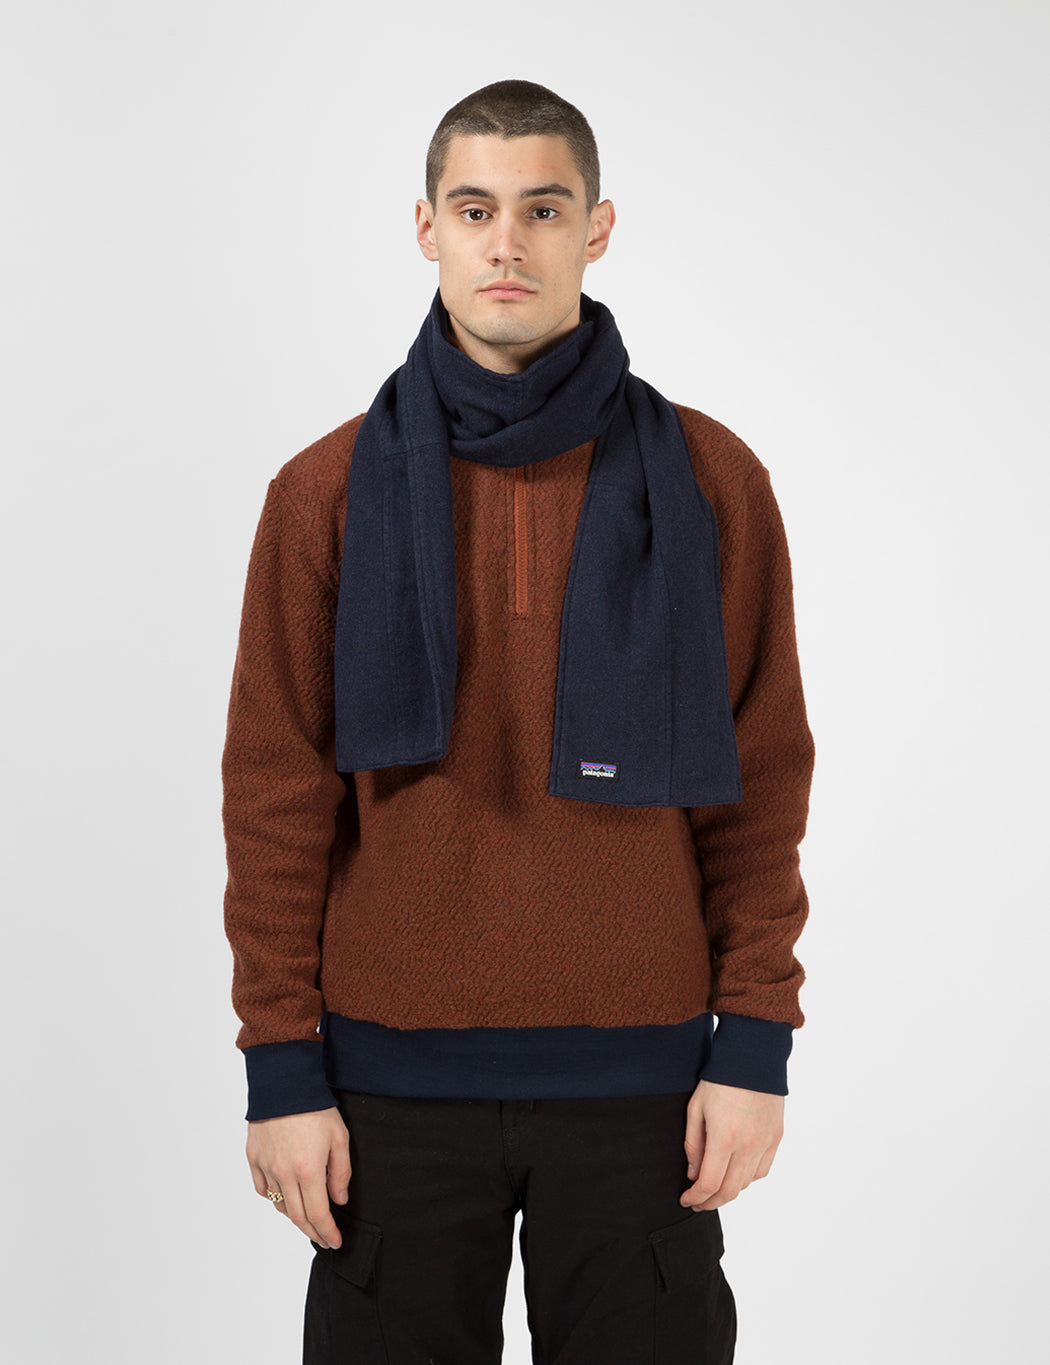 Patagonia Fjord Flannel Patchwork Scarf - Navy Blue   URBAN EXCESS.